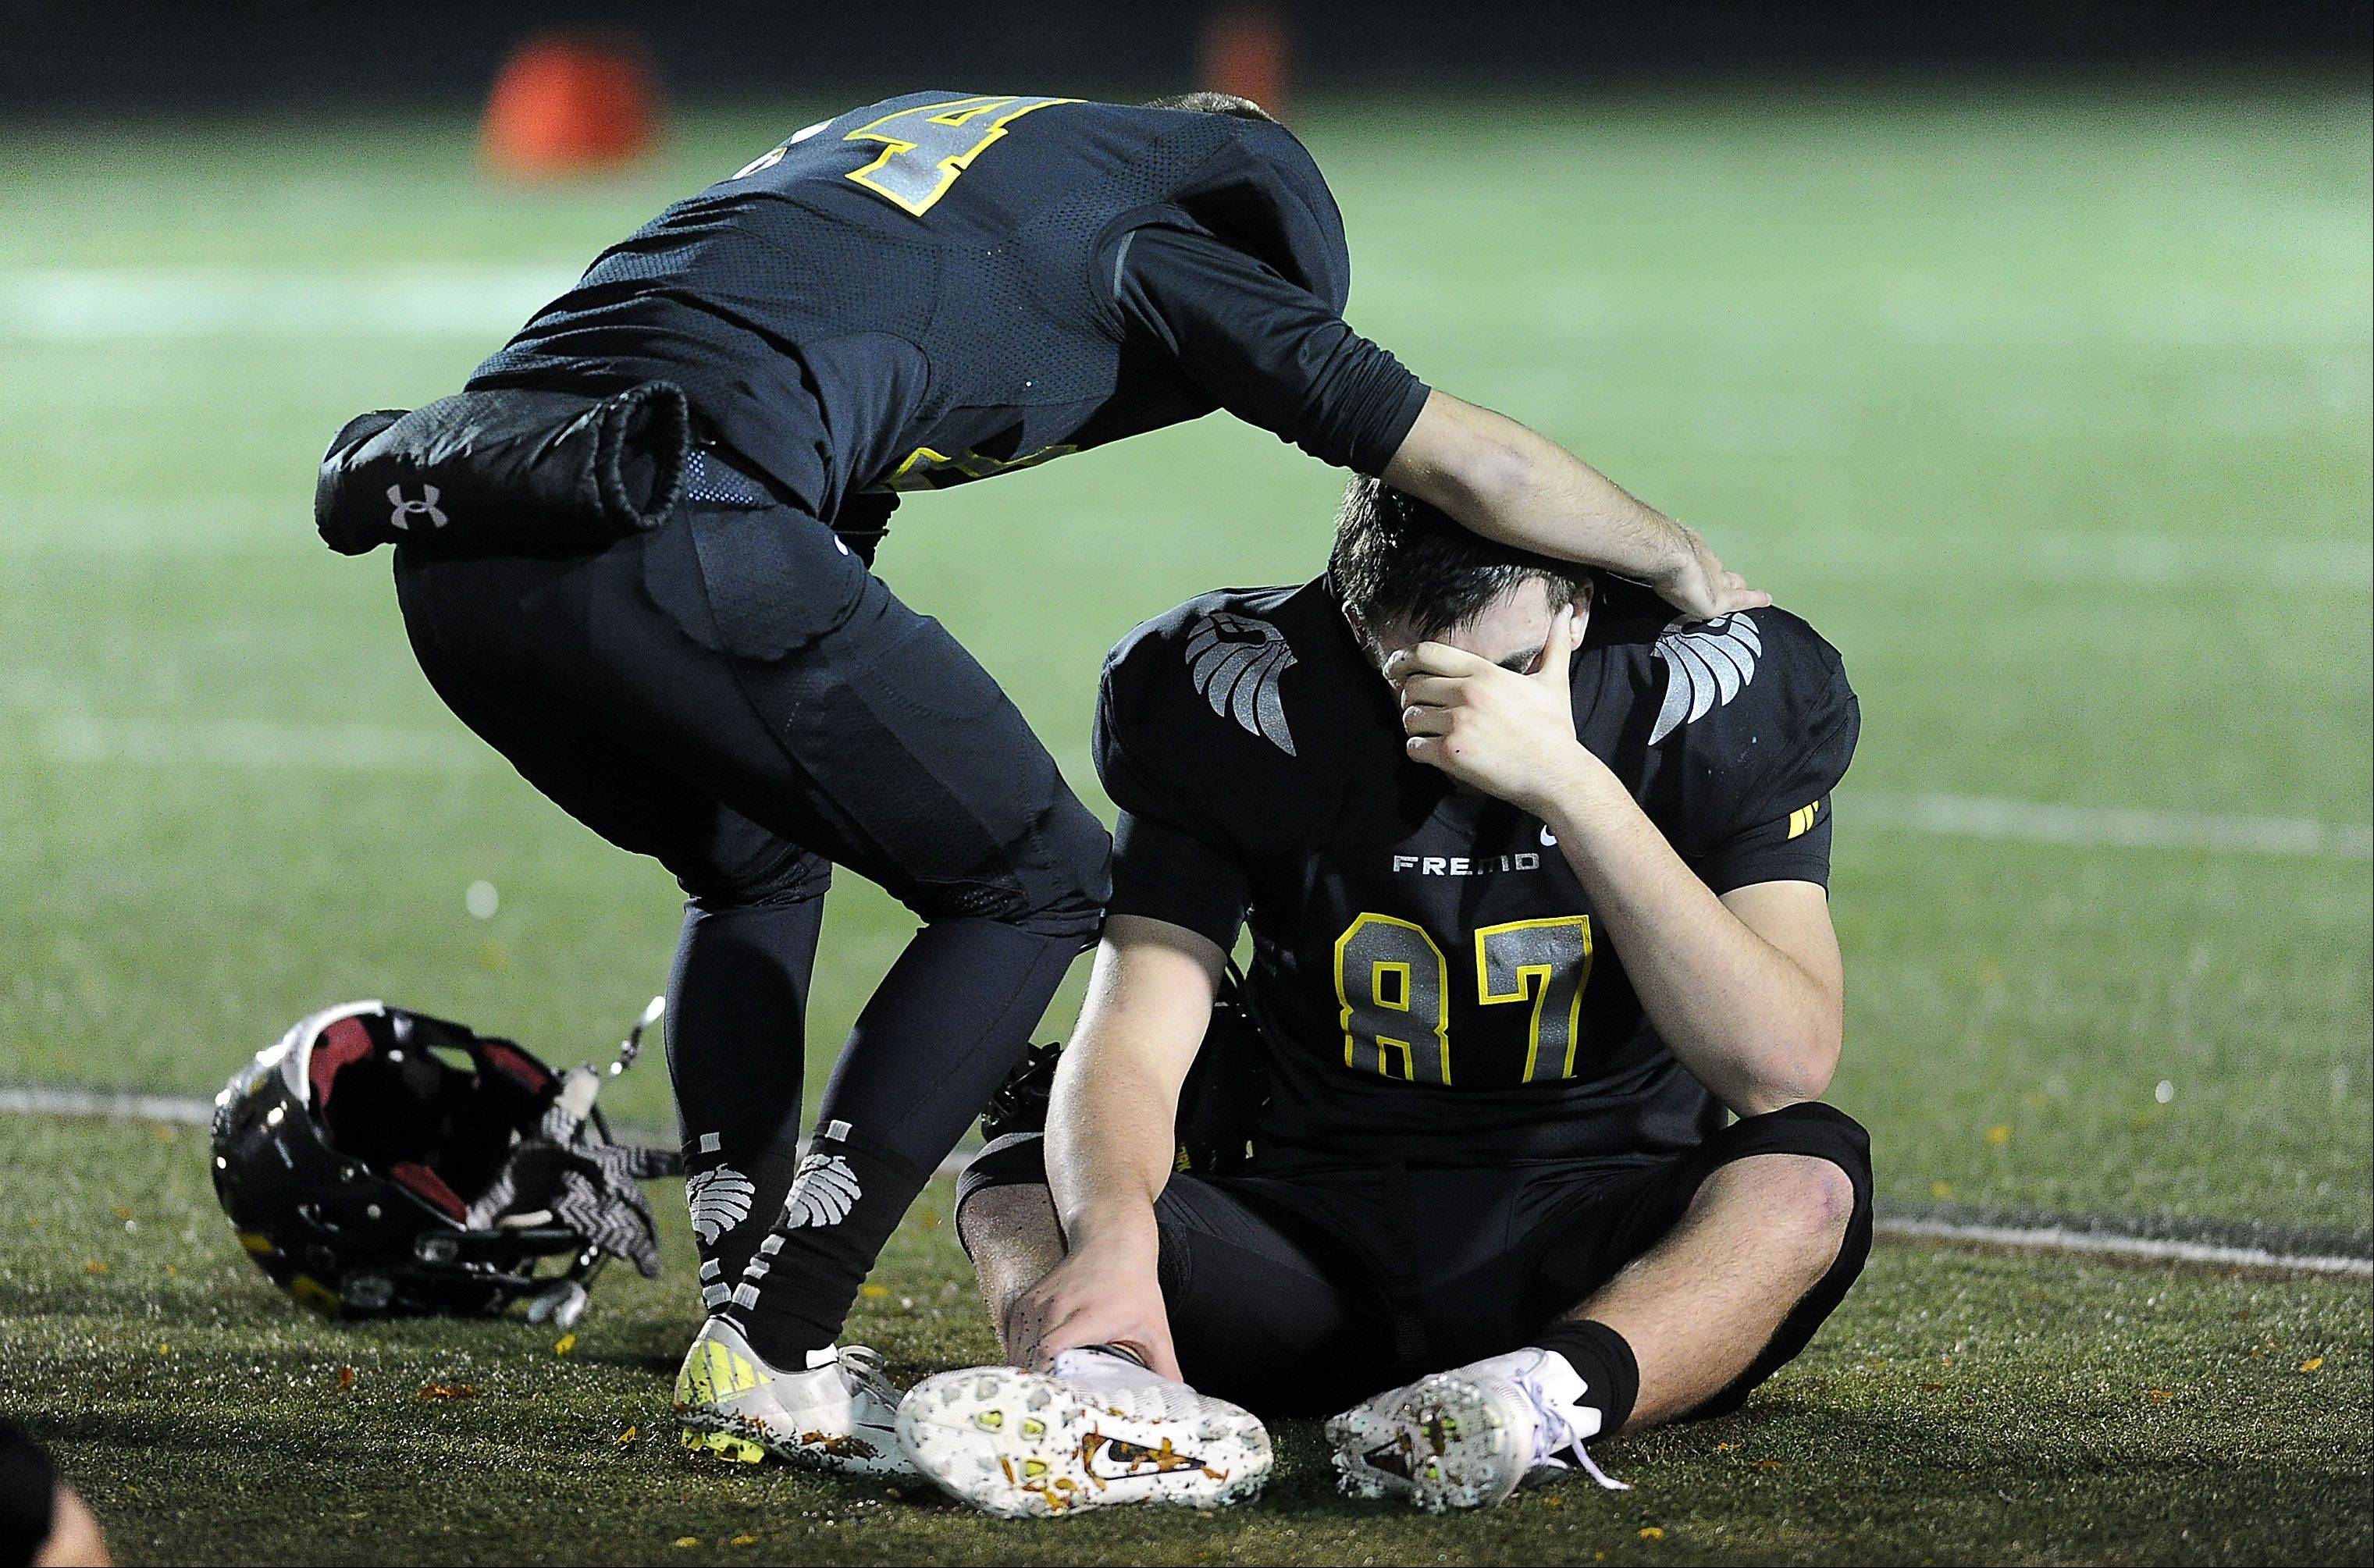 Fremd's Clayton Dukewich and teammate Andrew Stark react after the game.